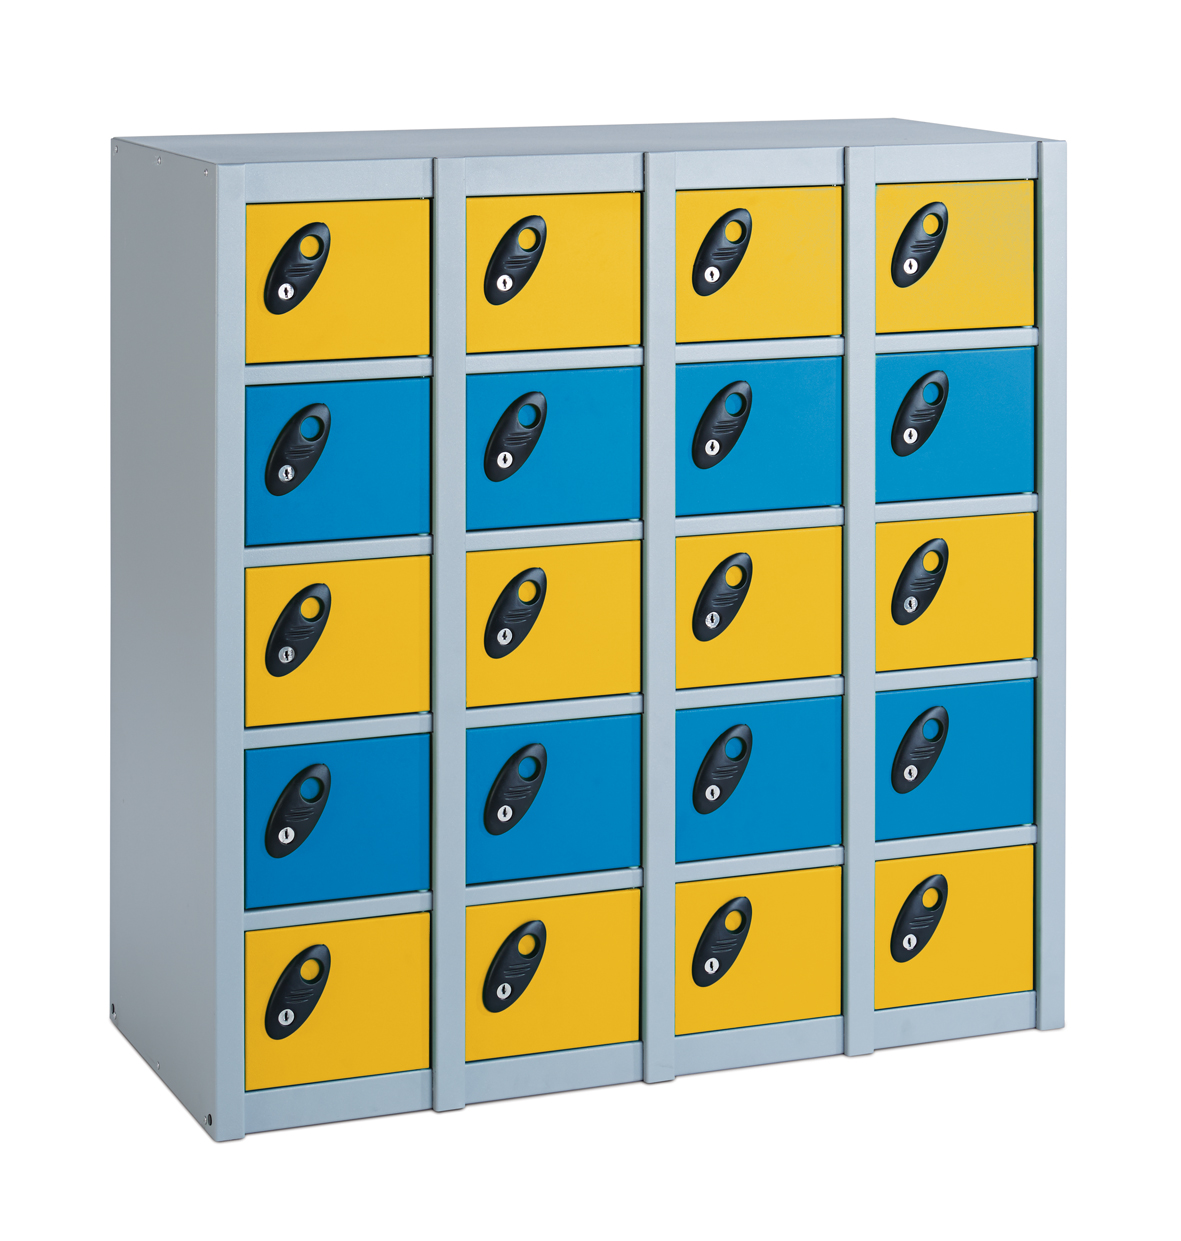 20 Compartments Mobile Phone and Personal Effect Locker